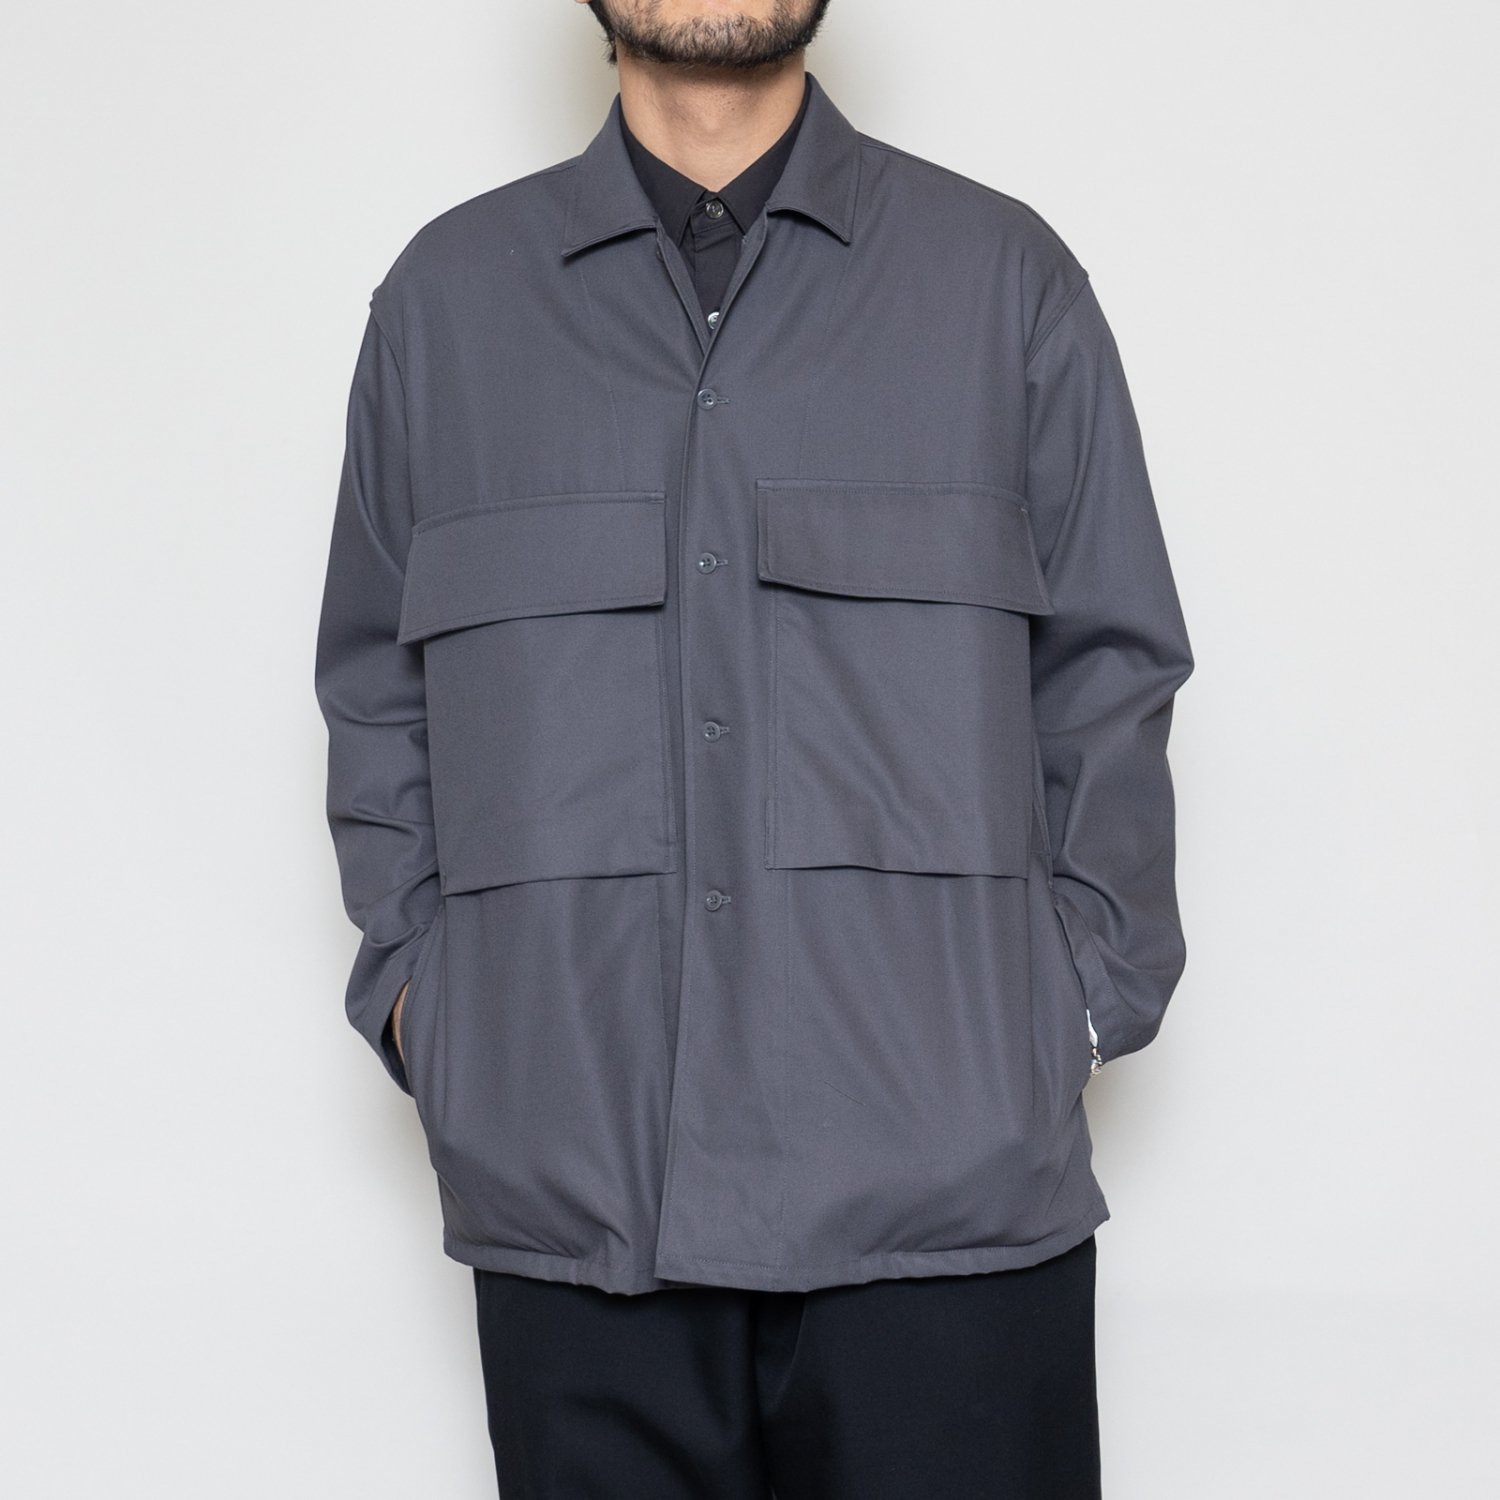 Graphpaper * Wooly Cotton Military Jacket * C.Gray